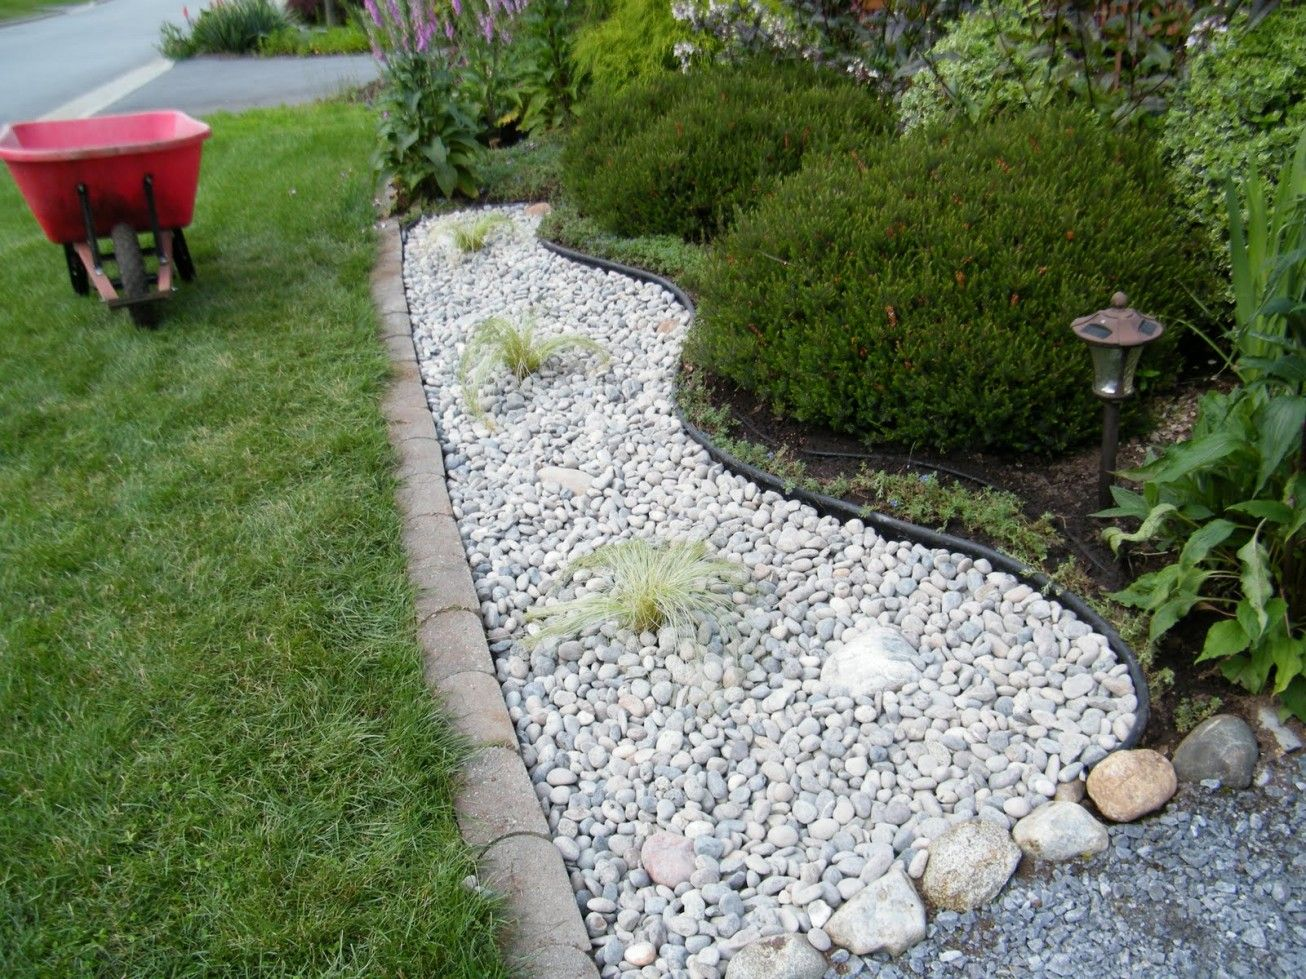 charming ideas oklahoma city home and garden show. delightful on the rocks curb side edition dandelion wrangler  landscaping delivered inspiring creativity and tiny oklahoma White Rocks For Landscaping Pinterest Front